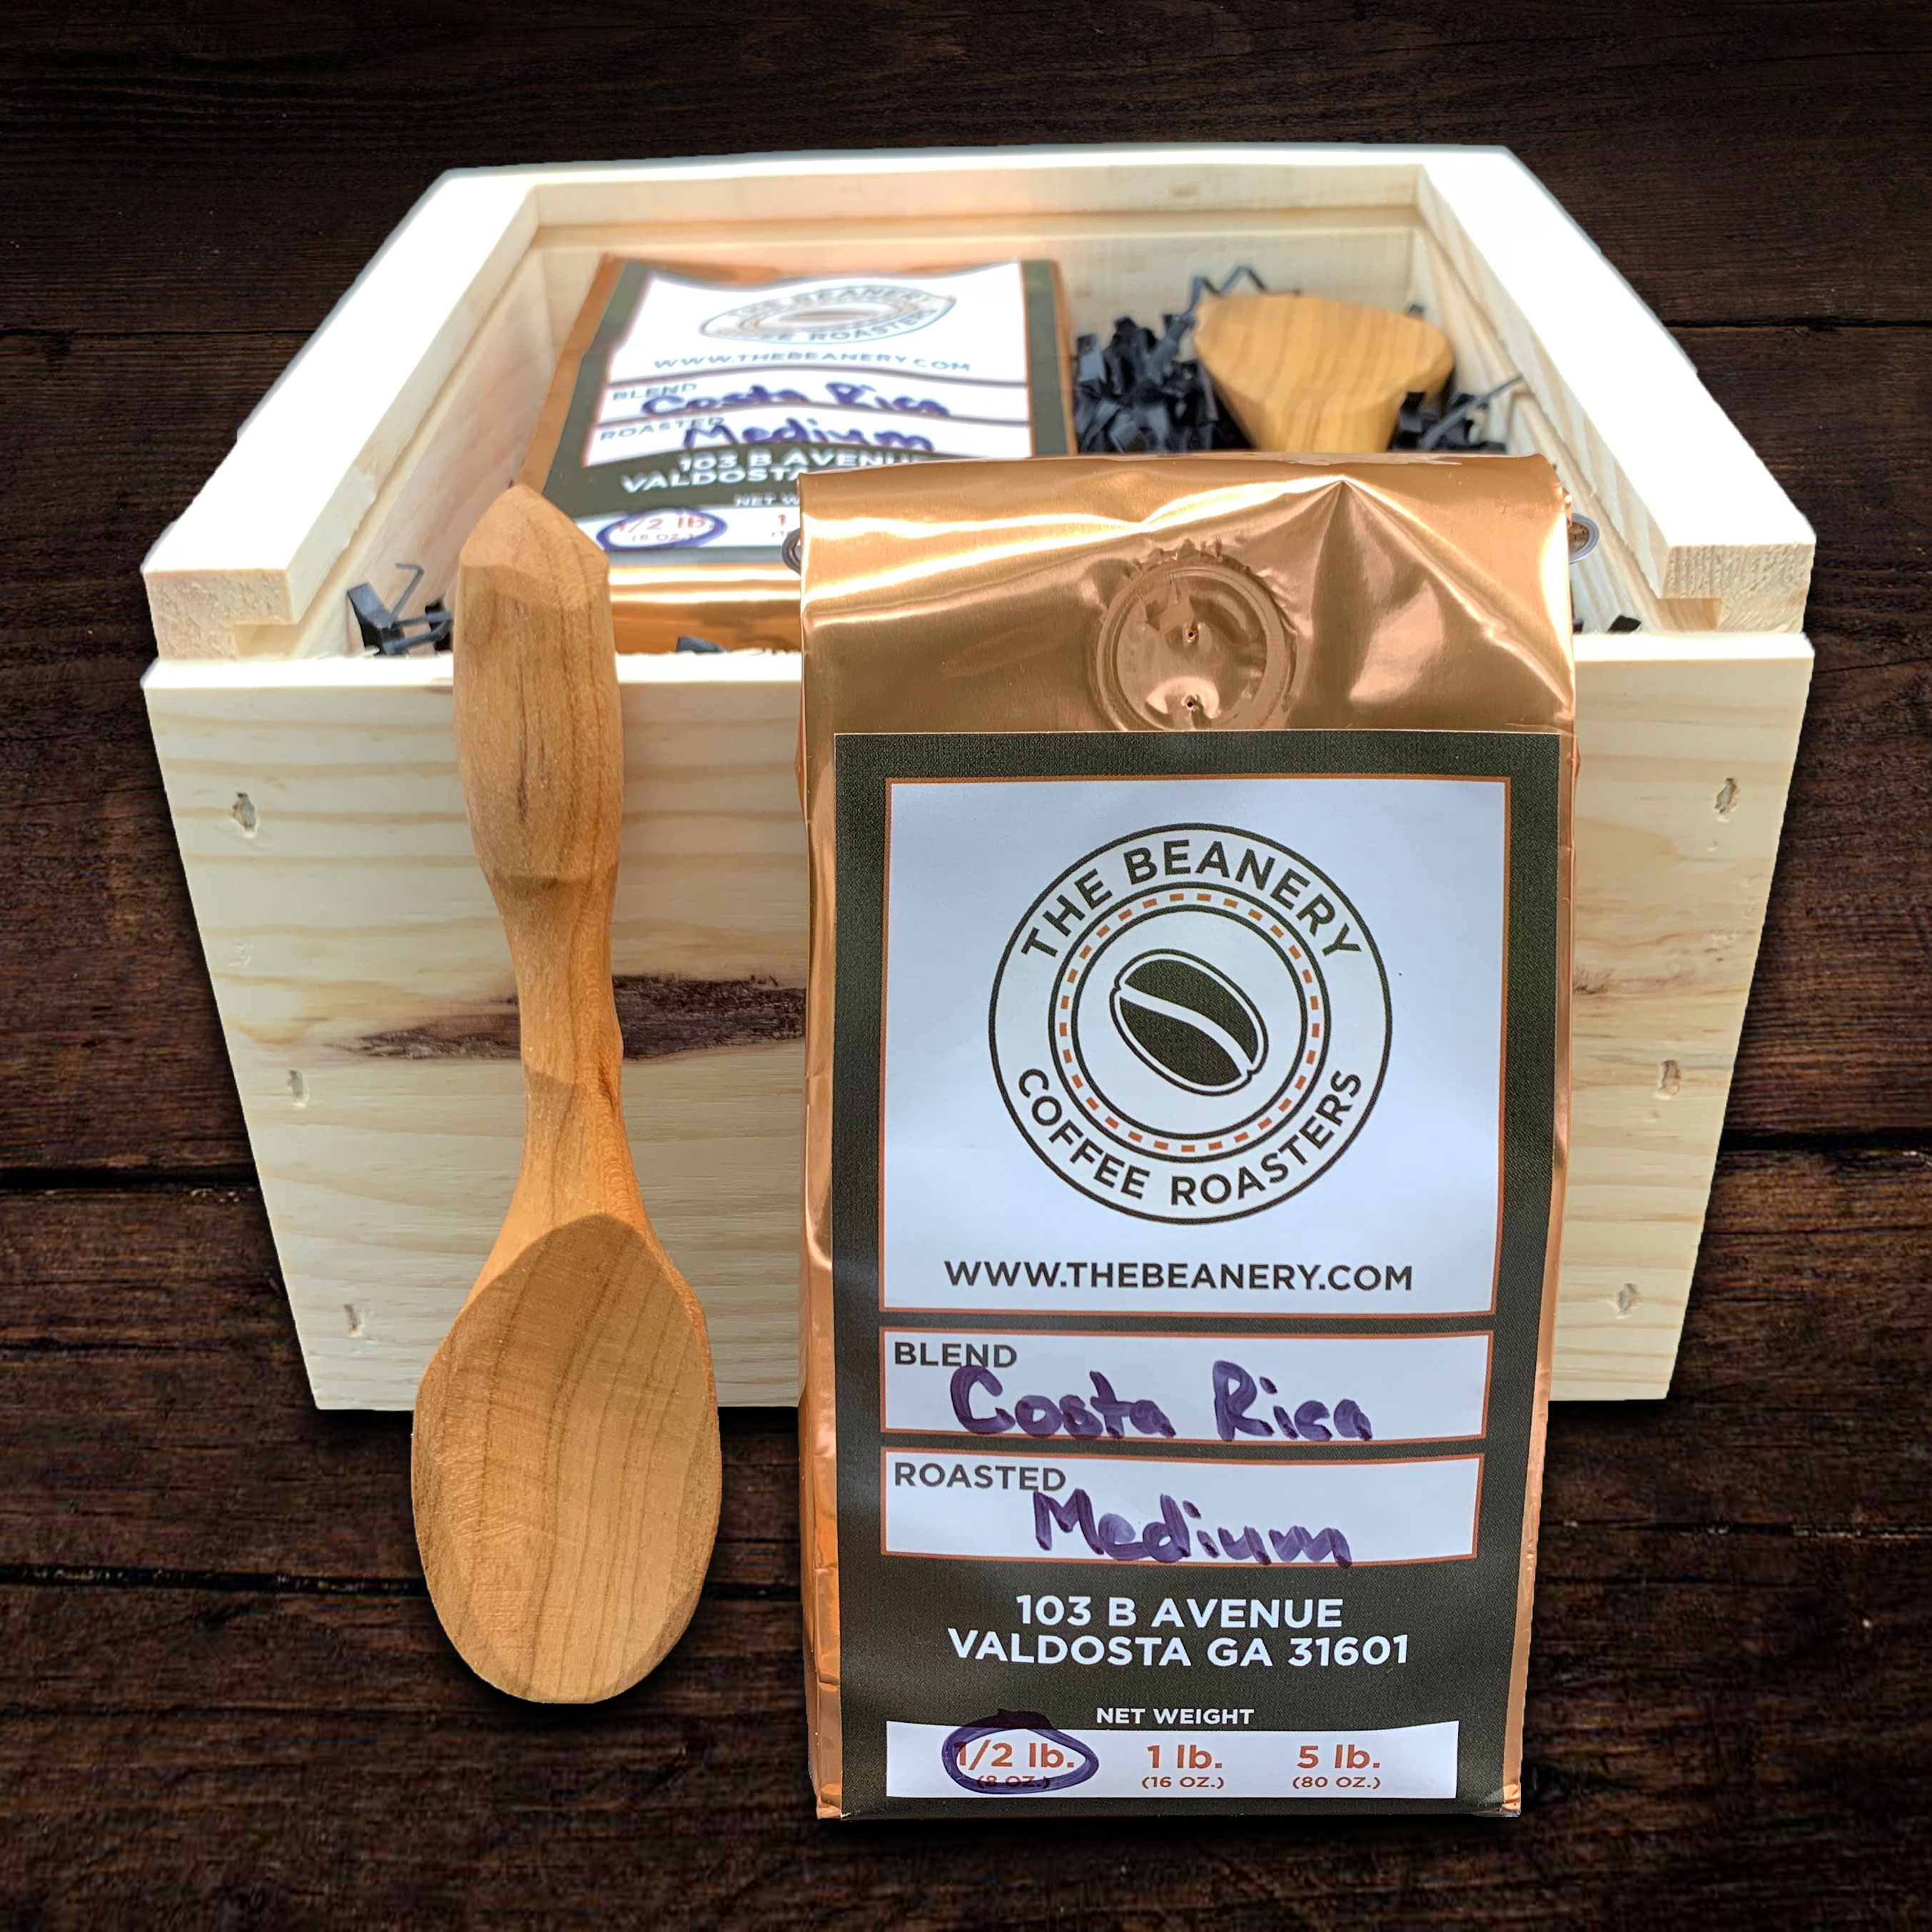 The artisans at The Beanery Coffee Roasters have handcrafted the perfect gift for coffee lovers.  Th